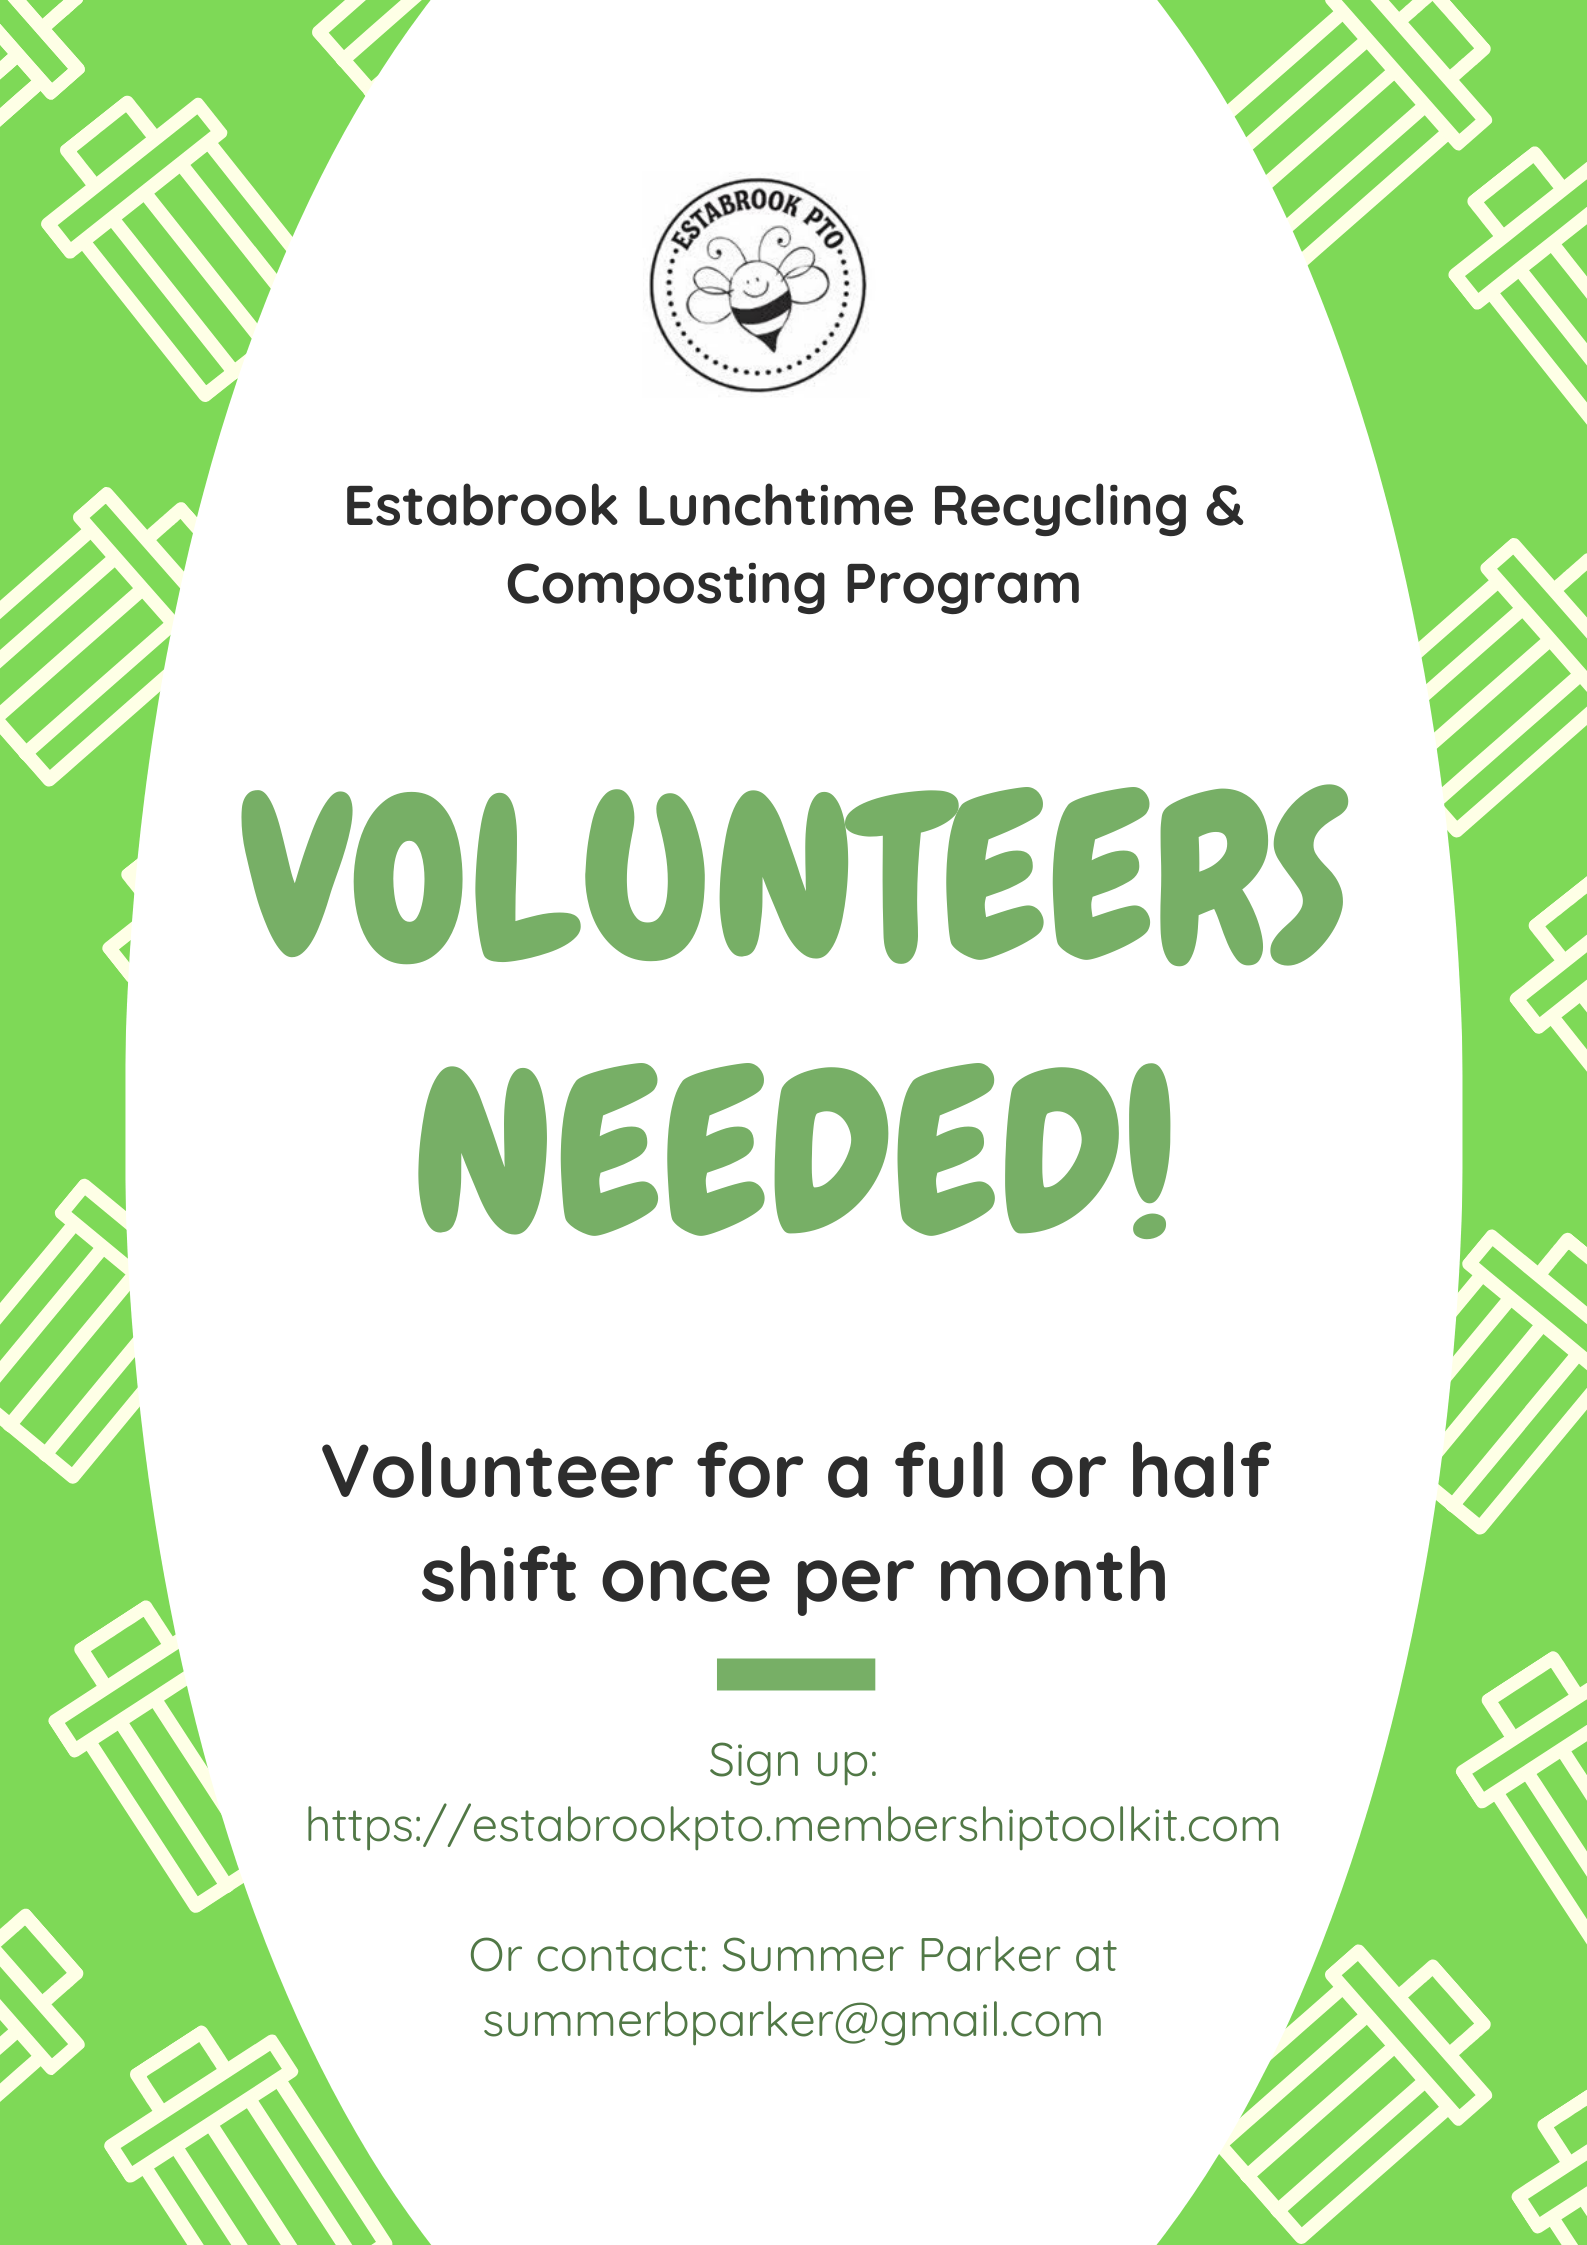 Estabrook Lunchtime Recycling & Composting Program-Volunteers calling (1)